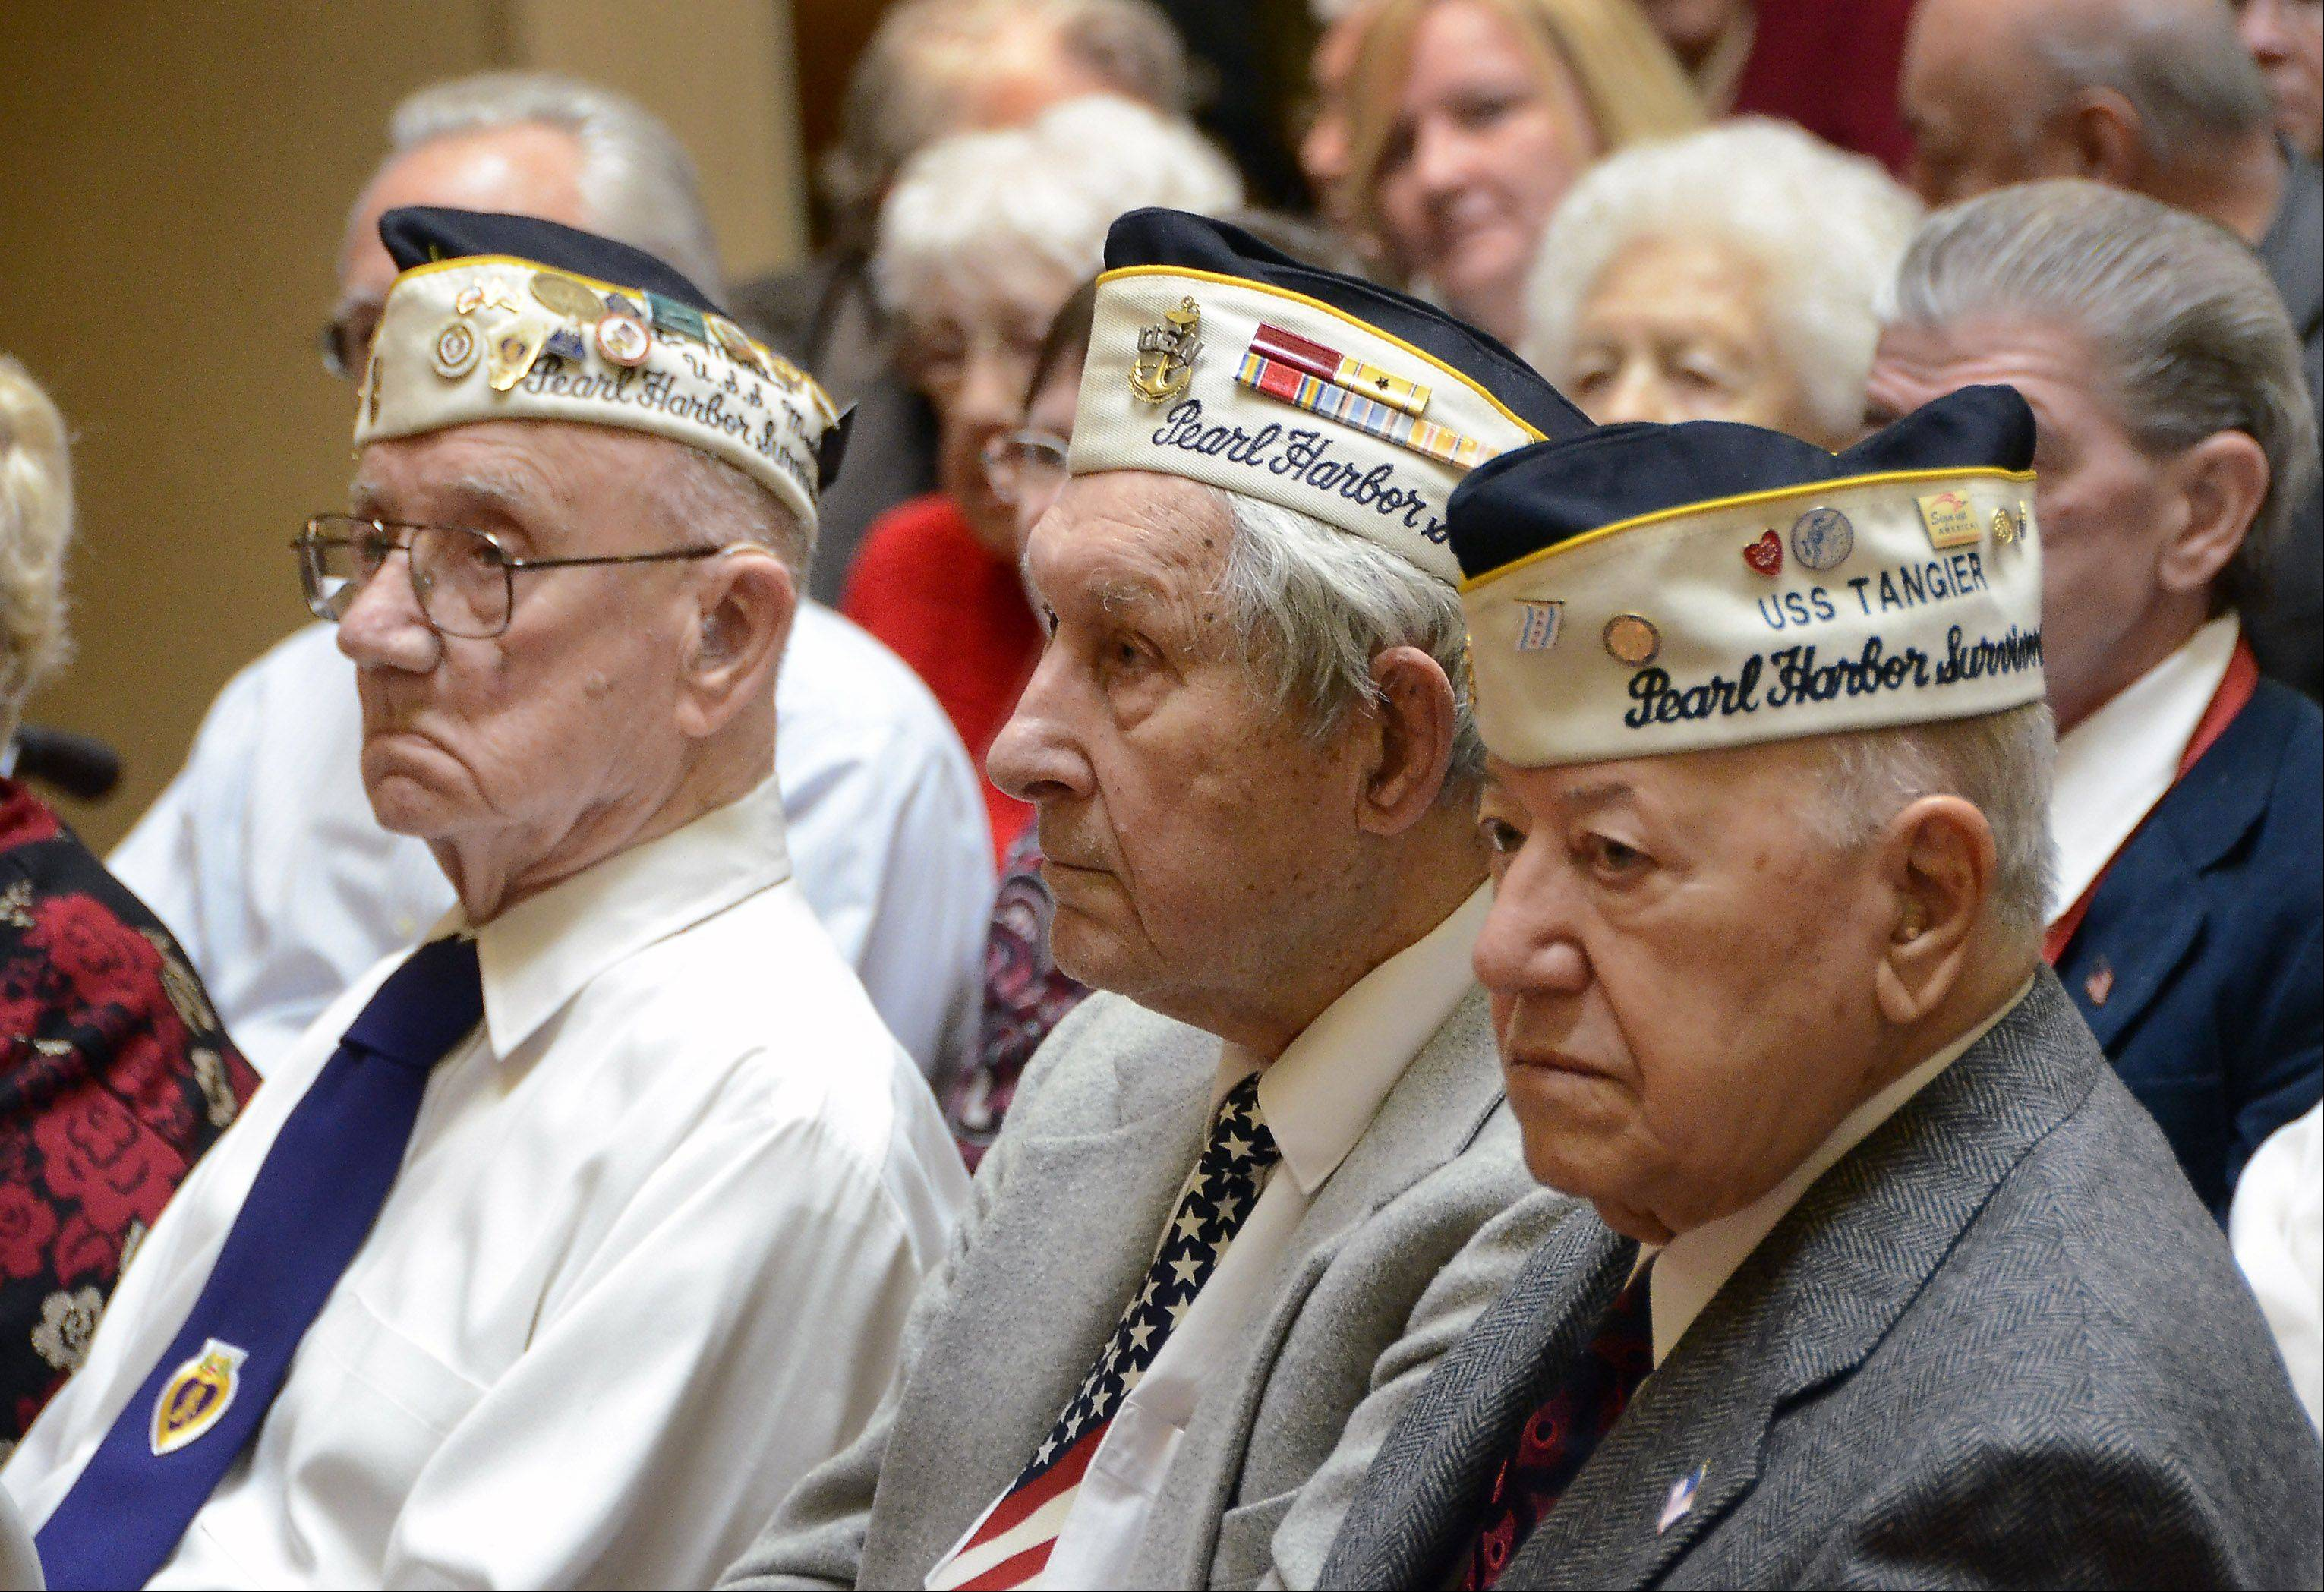 Pearl Harbor attack survivors Ed Block of LaGrange, who was on the USS Medusa; James Lyle Hancock of Skokie, who worked in the Navy Yard Dispensary; and Joe Triolo of Waukegan, who was on the USS Tangier, listen to speakers at a remembrance ceremony Friday, Dec. 7, at Oakton Place retirement home in Des Plaines.